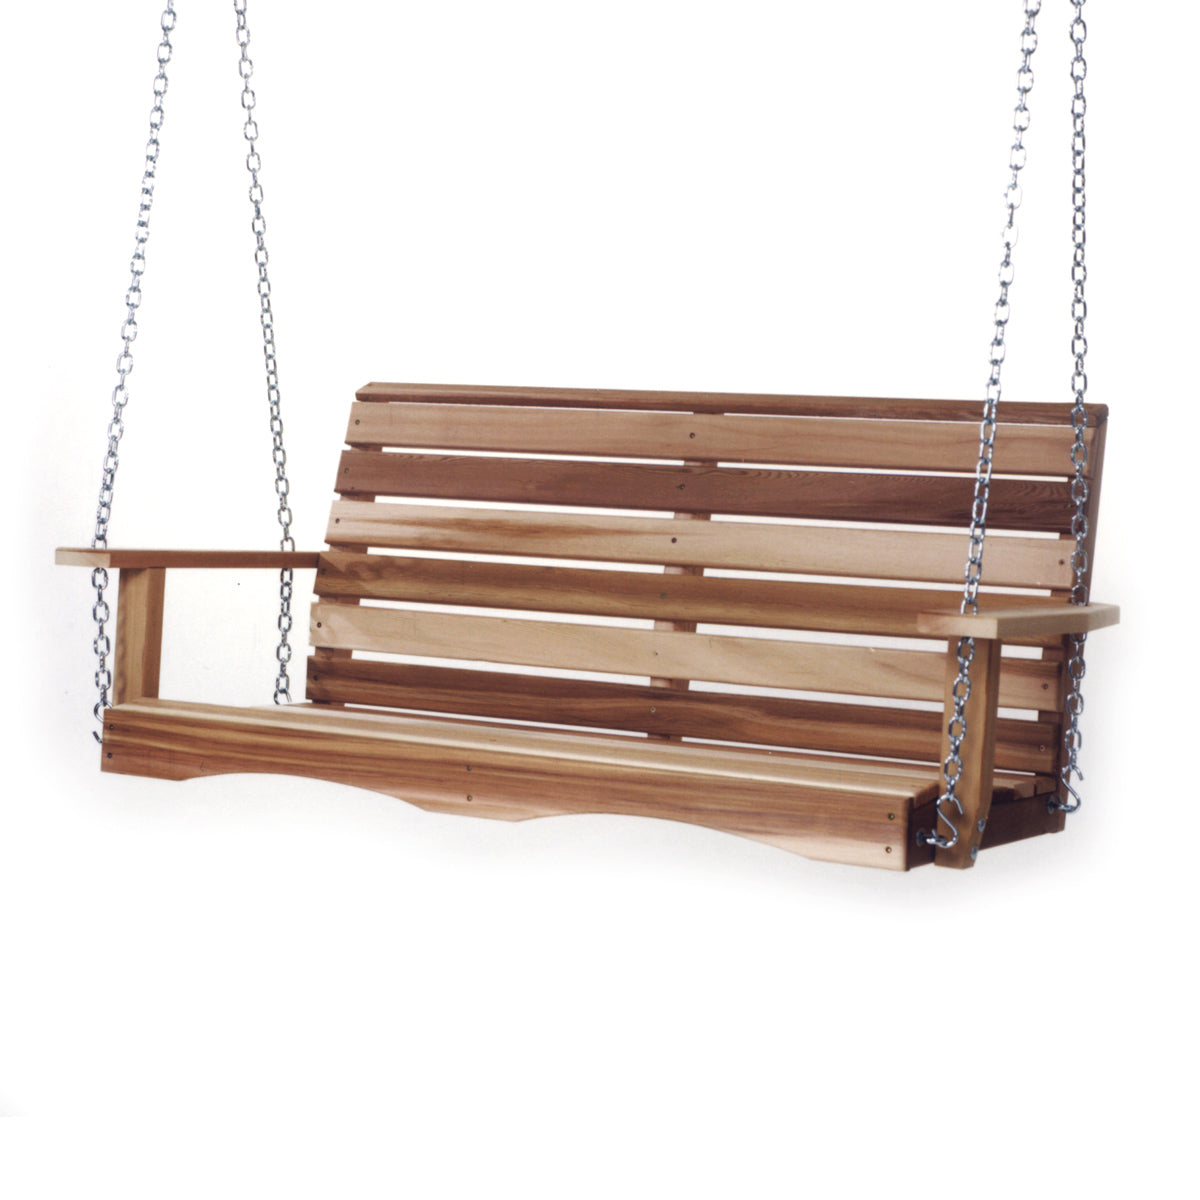 Porch Swing 4' With Comfort Springs